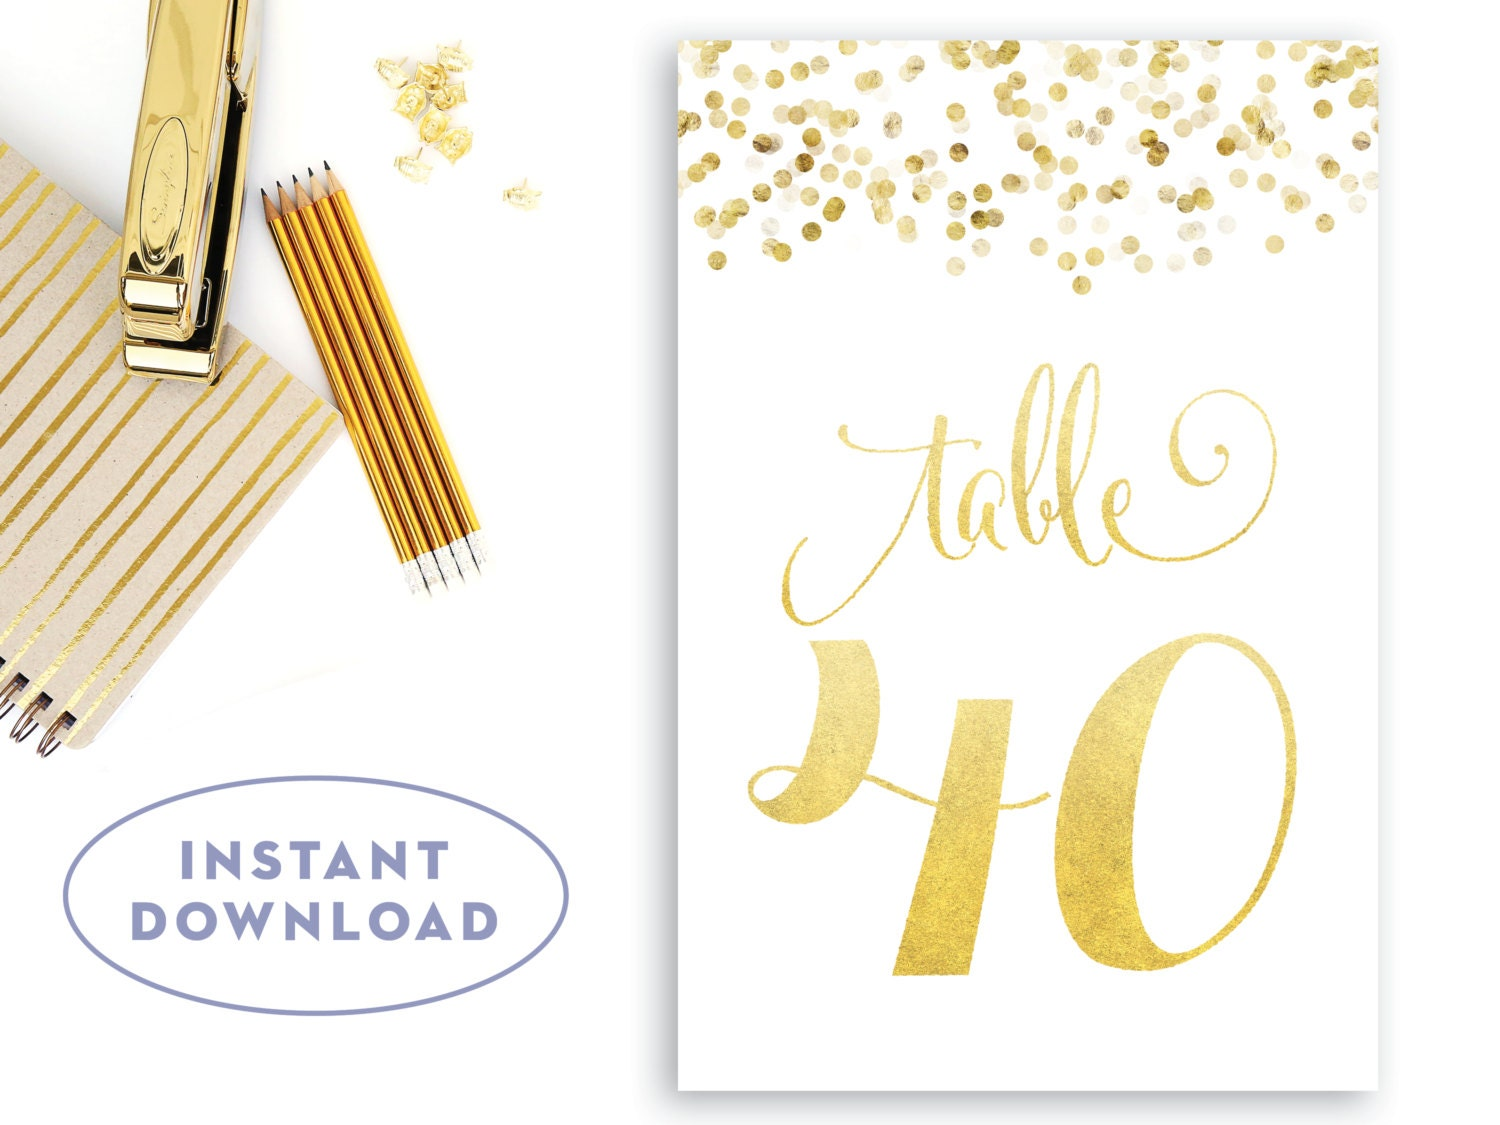 4x6 Gold Table Numbers Printable Instant Download Gold. Gifts For Phd Graduates. Pages Cover Letter Template. Request For Donation Template. Unique Resume Objective Samples For Entry Level. Services Invoice Template Free. Materials Science Graduate Programs. Tarjetas De Presentacion Gratis. Pictures Of Graduation Caps